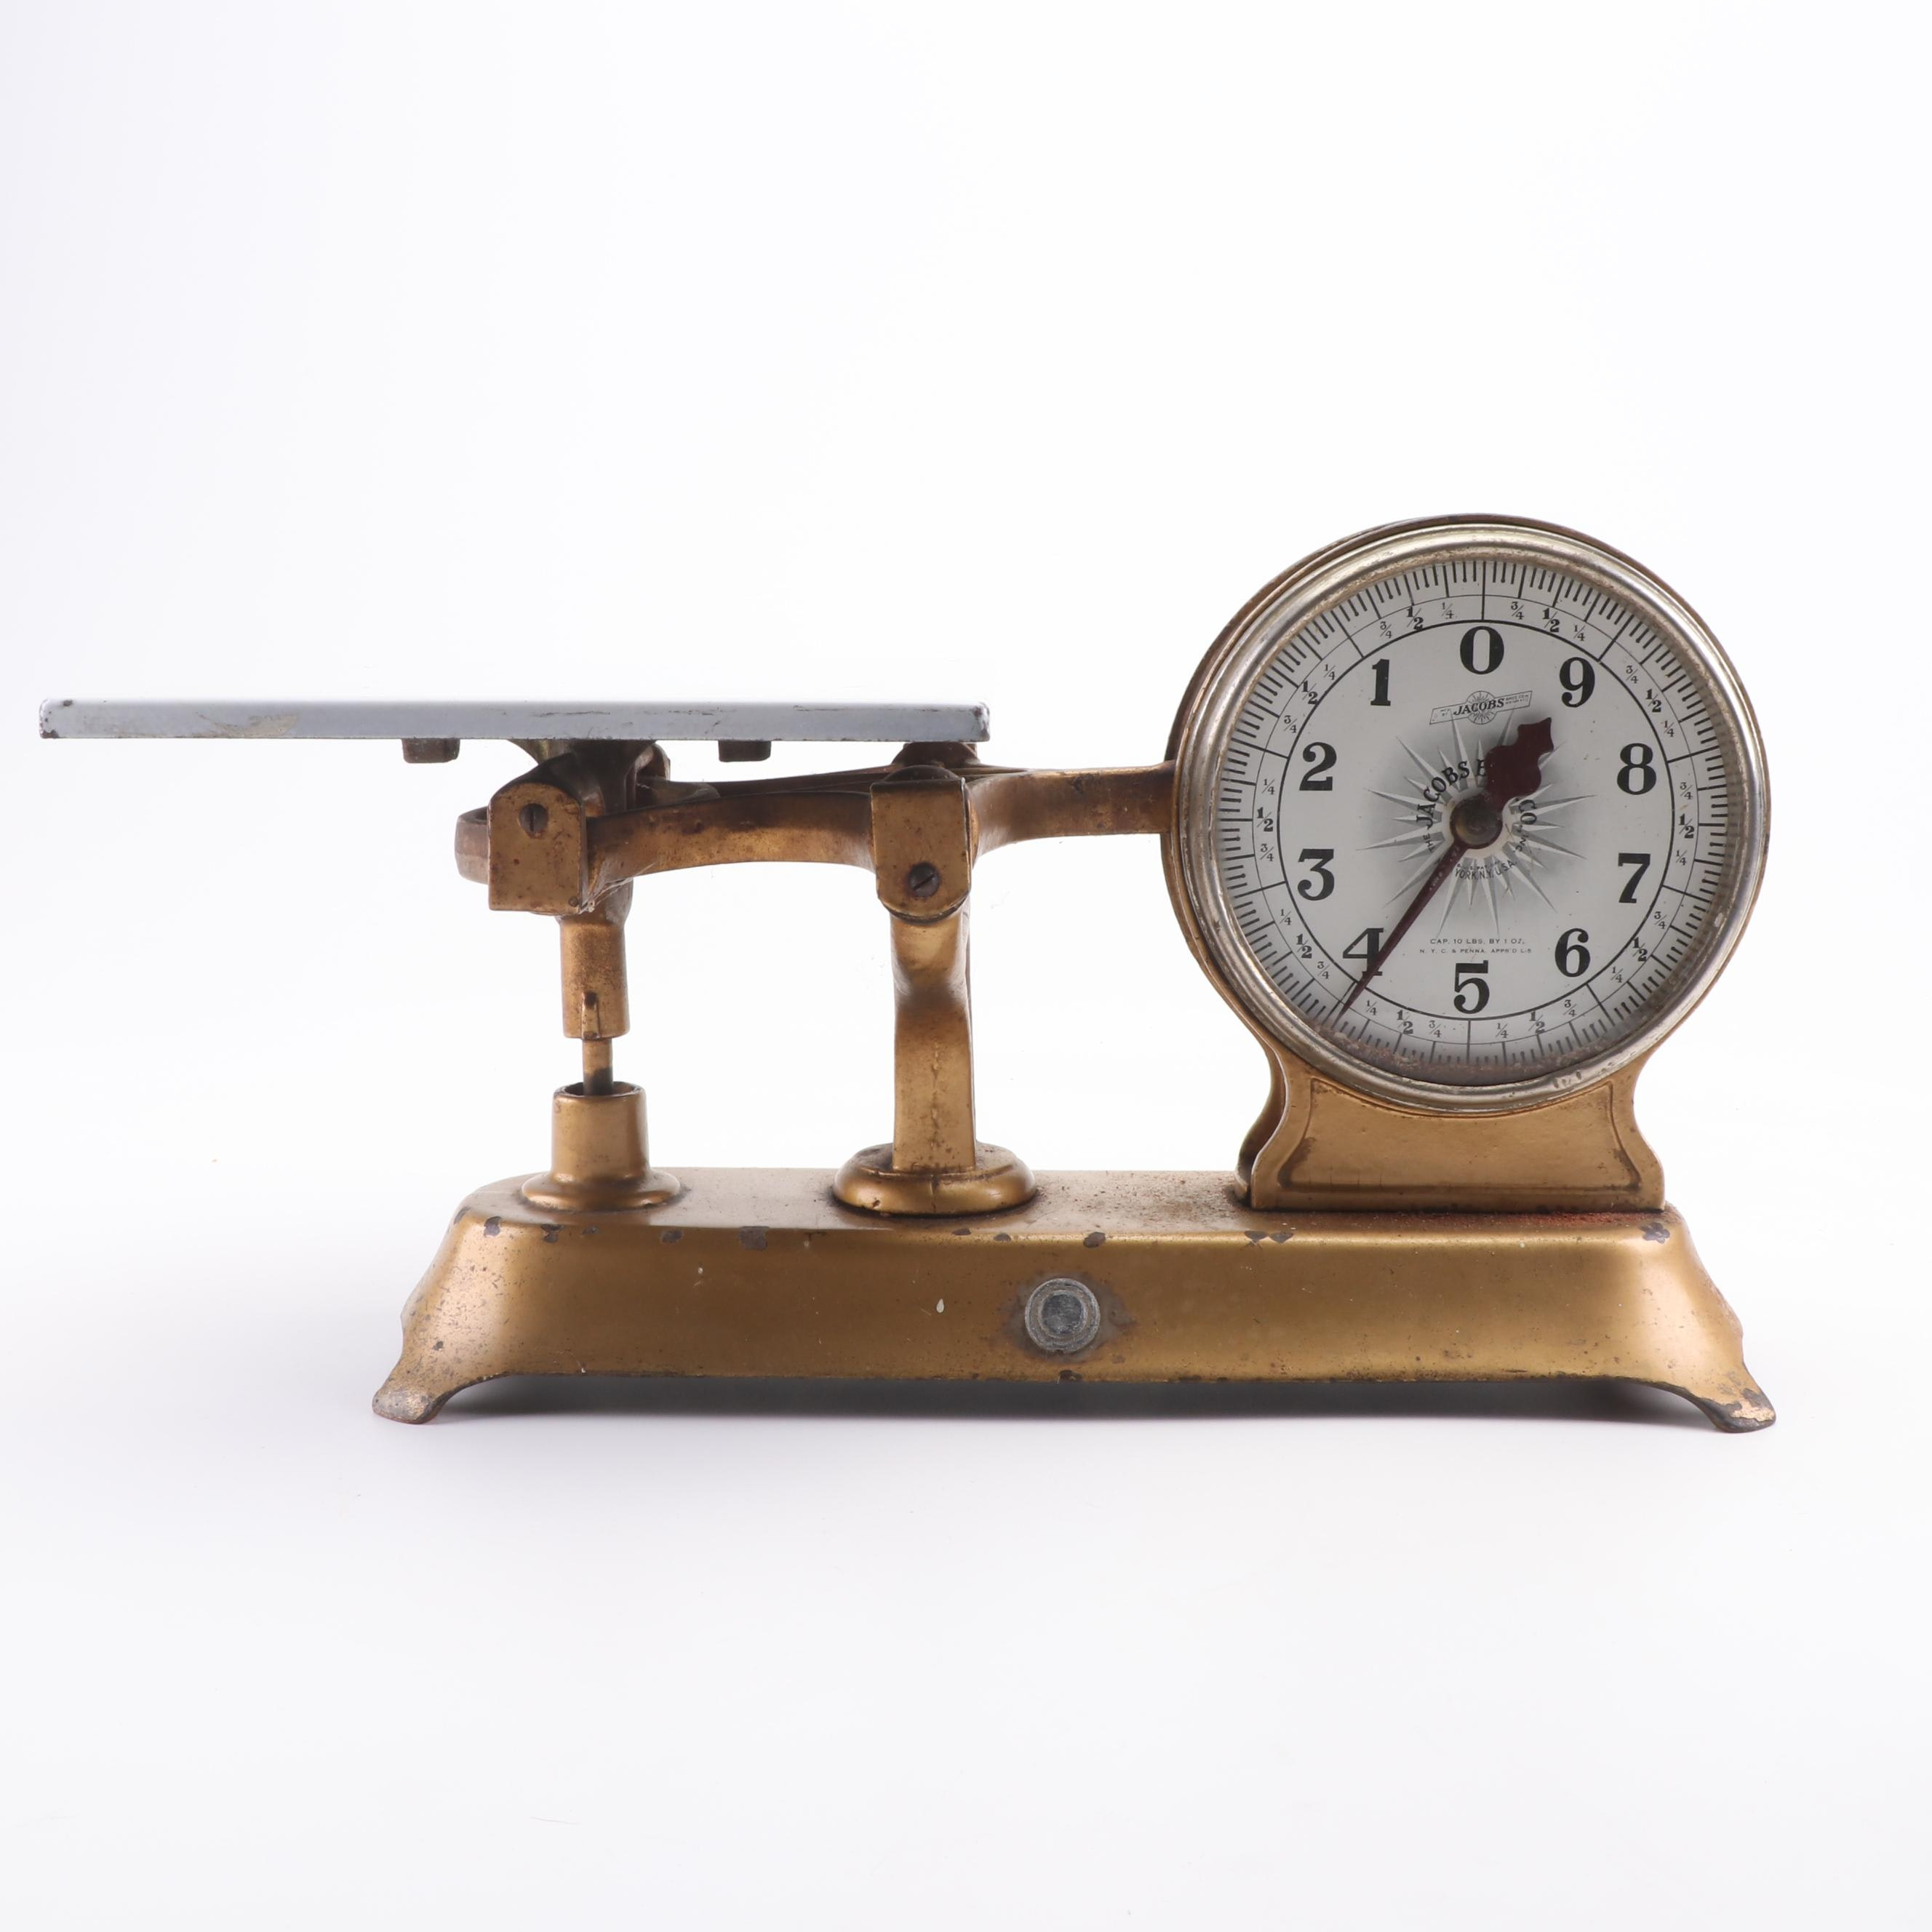 Jacobs Brothers Cast Iron Scale